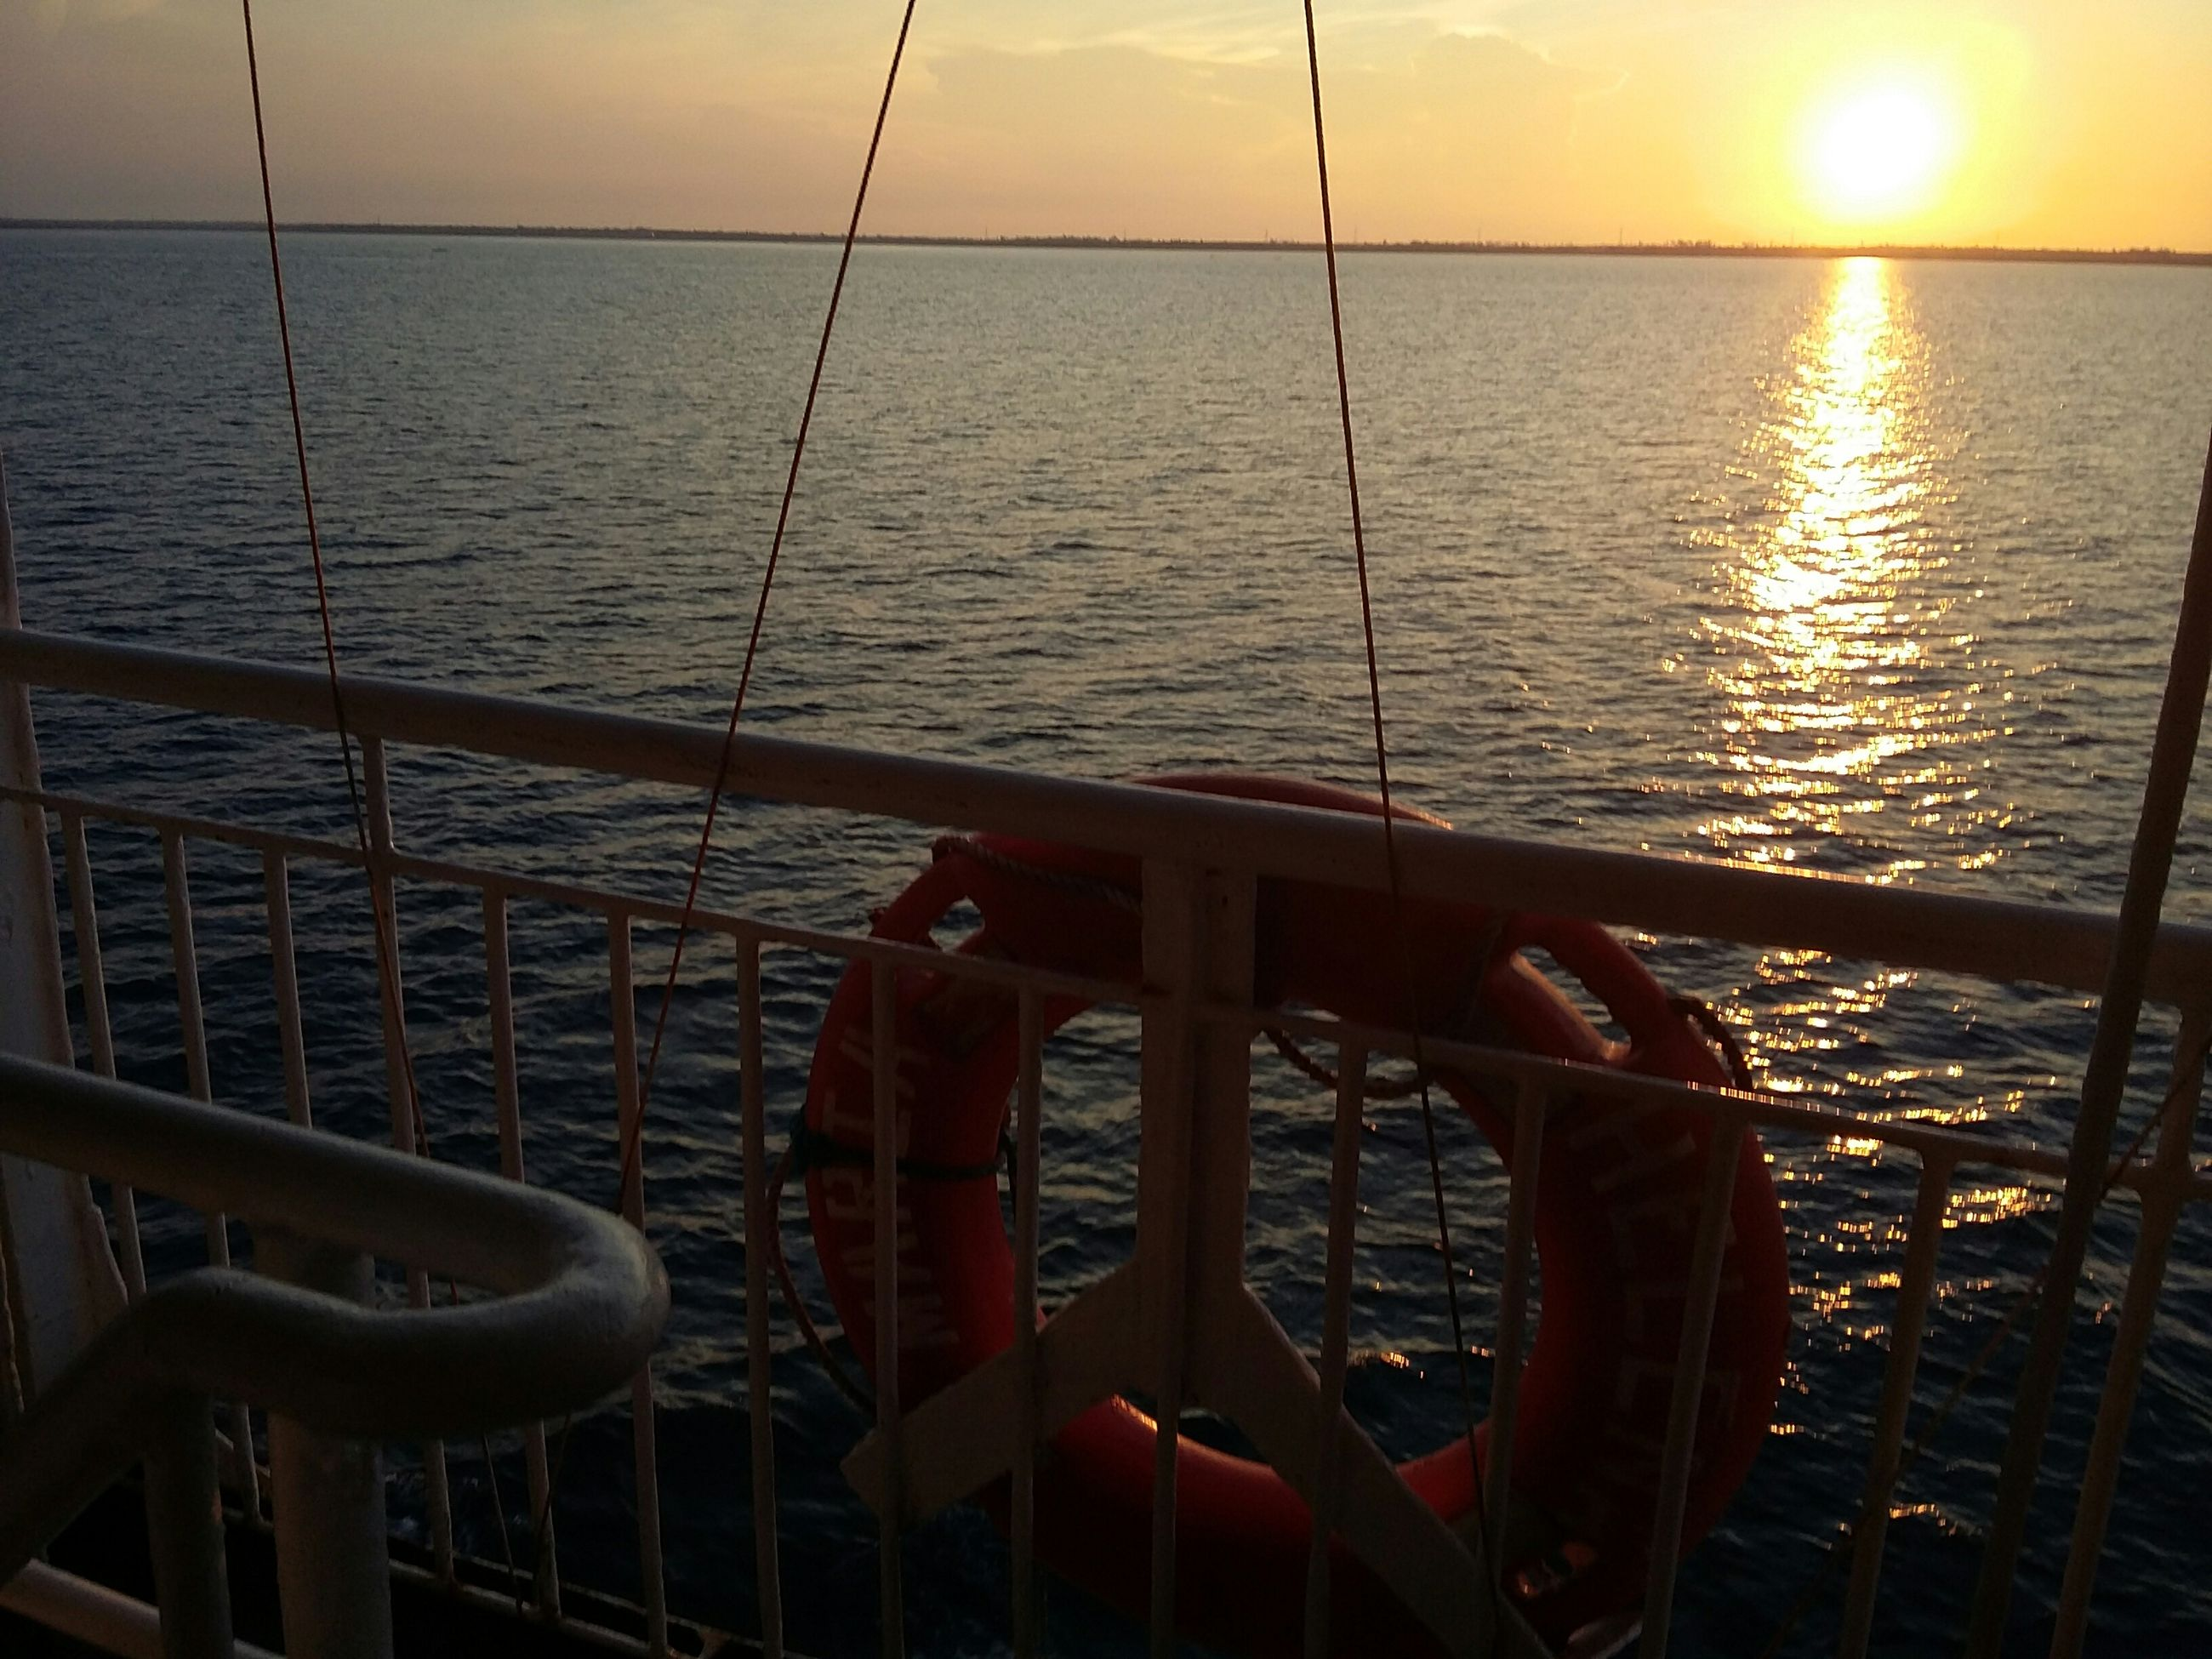 water, sea, sunset, nautical vessel, transportation, mode of transport, boat, horizon over water, tranquility, sky, scenics, tranquil scene, sun, nature, rippled, beauty in nature, sunlight, reflection, orange color, travel